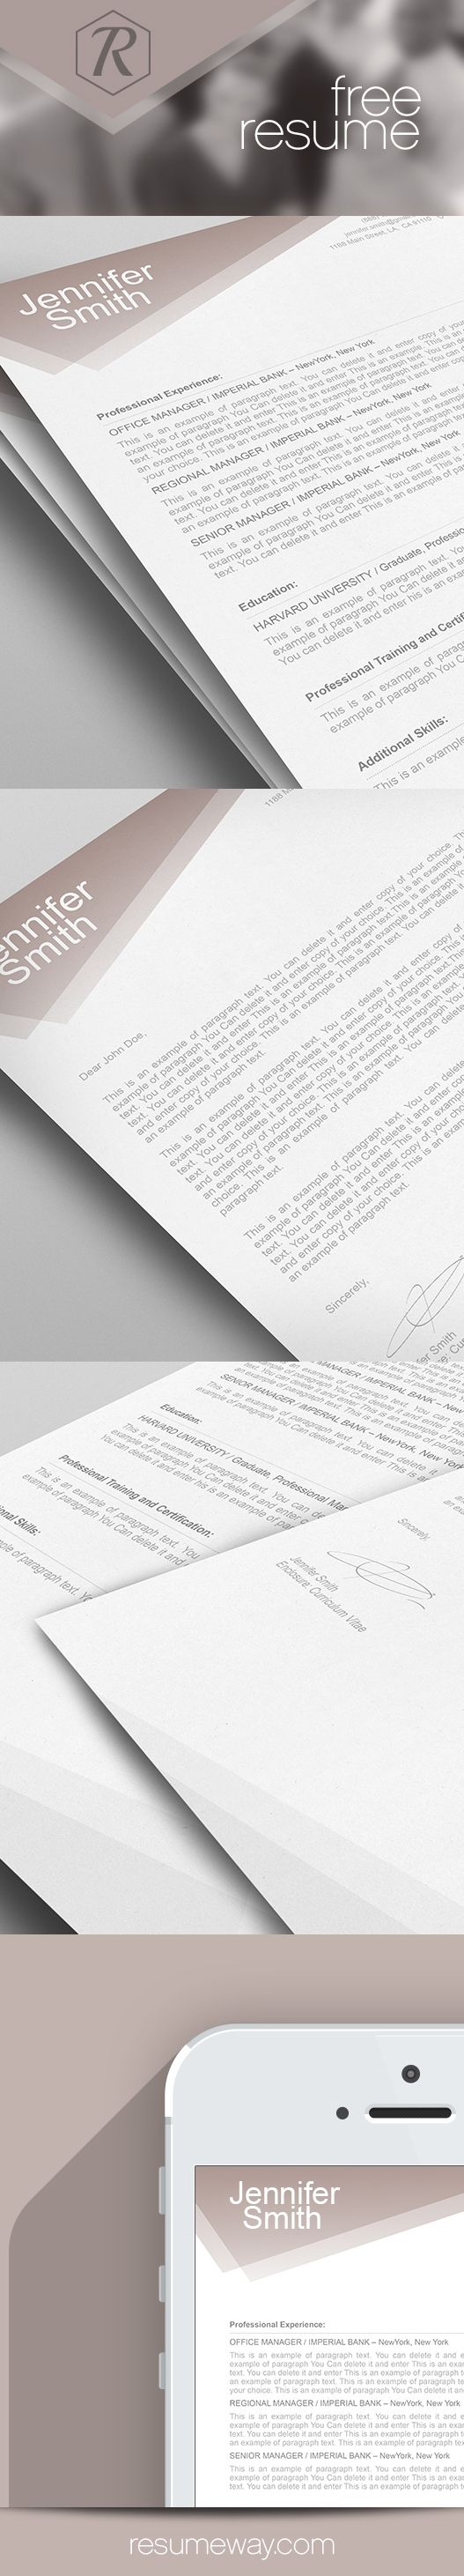 free resume template 1100010 premium line of resume cover letter templates edit with ms word apple pages - Apple Pages Resume Templates